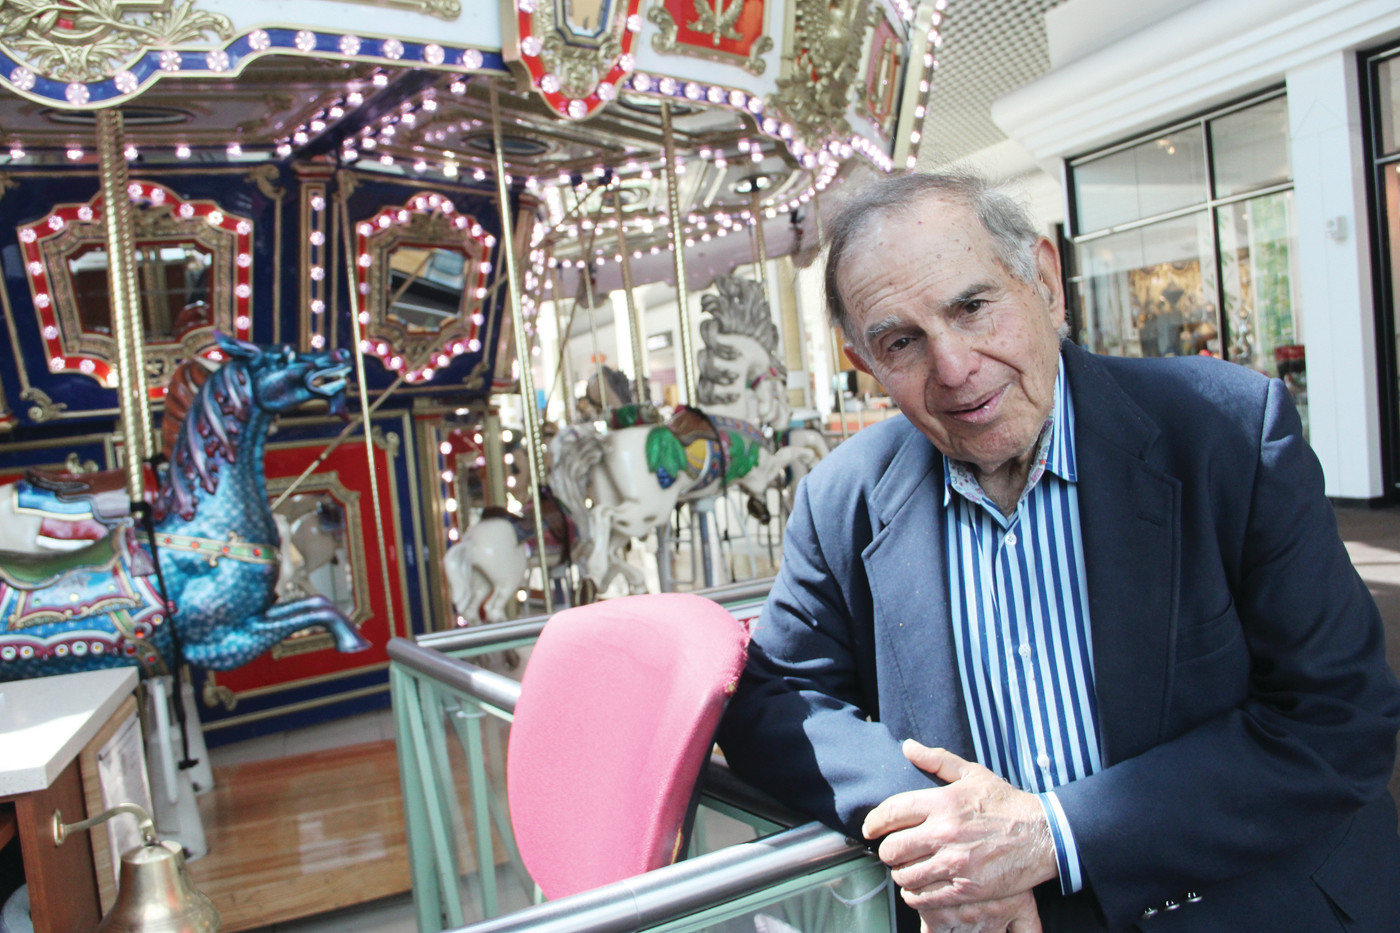 HIS IDEA: Aram Garabedian, managing partner of Warwick Mall, beside the carousel he insisted be a part of the mall.